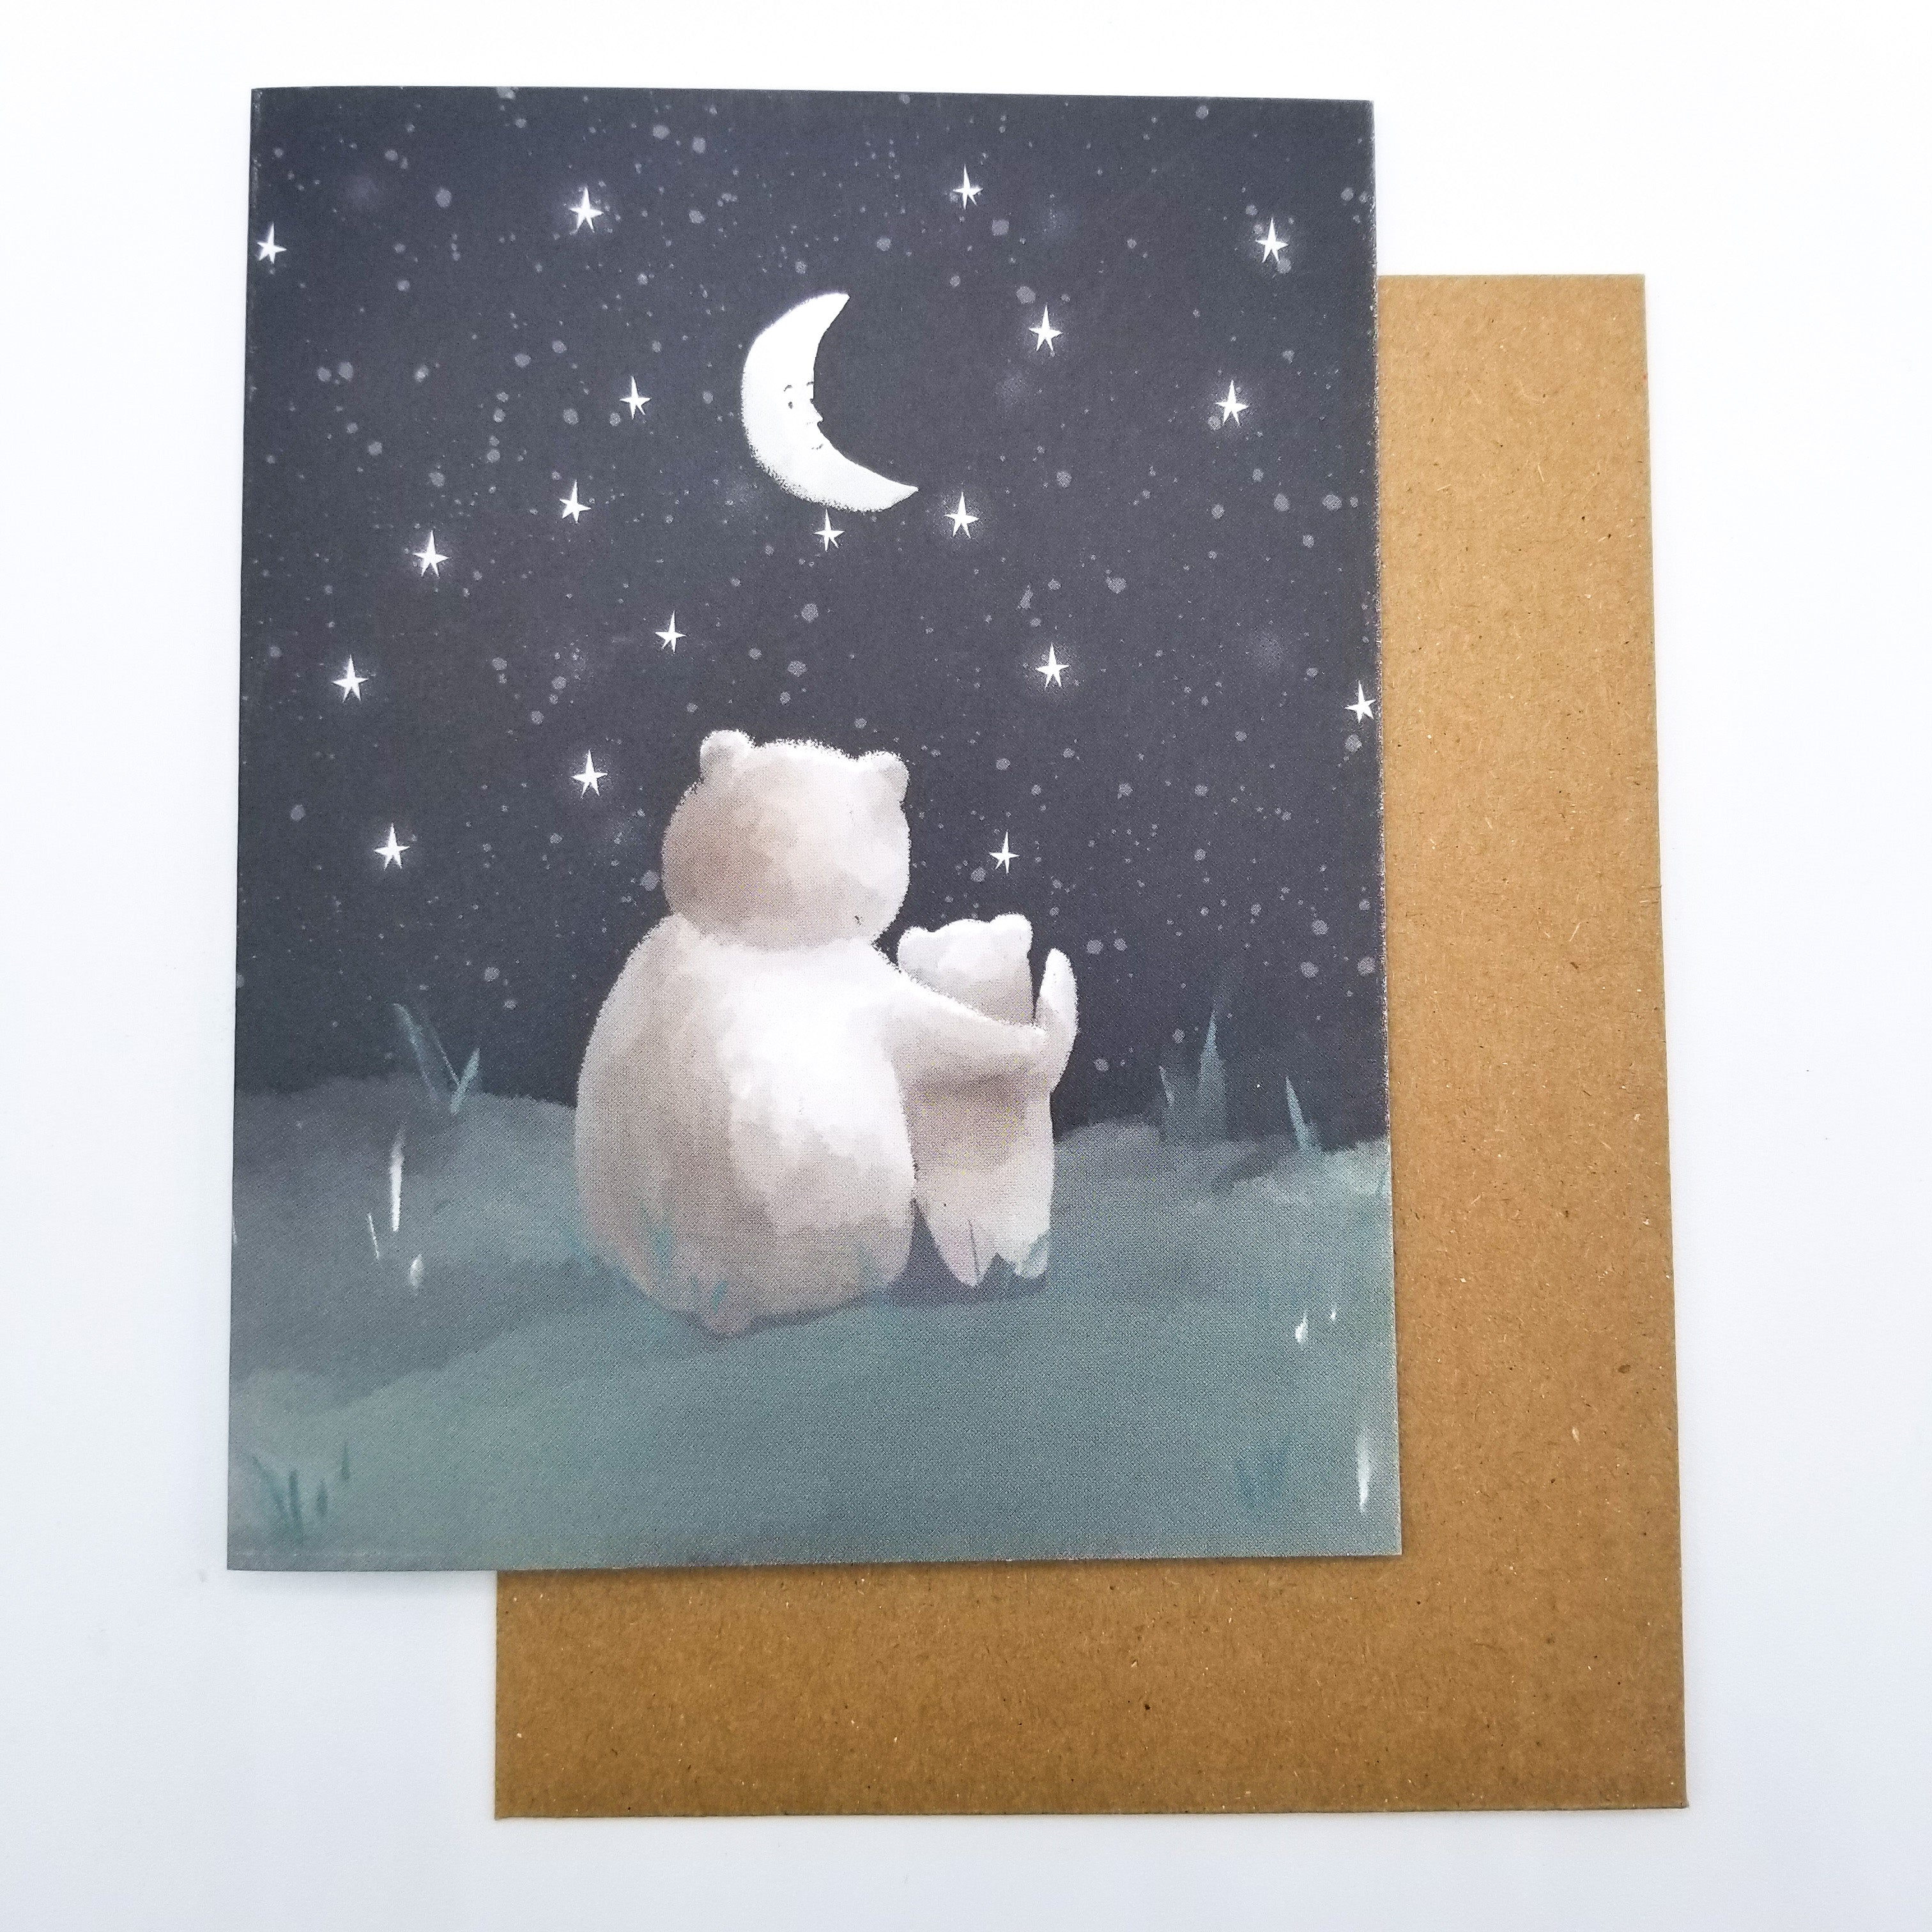 Stargazing Greeting Card 4x5 by Paper Canoe